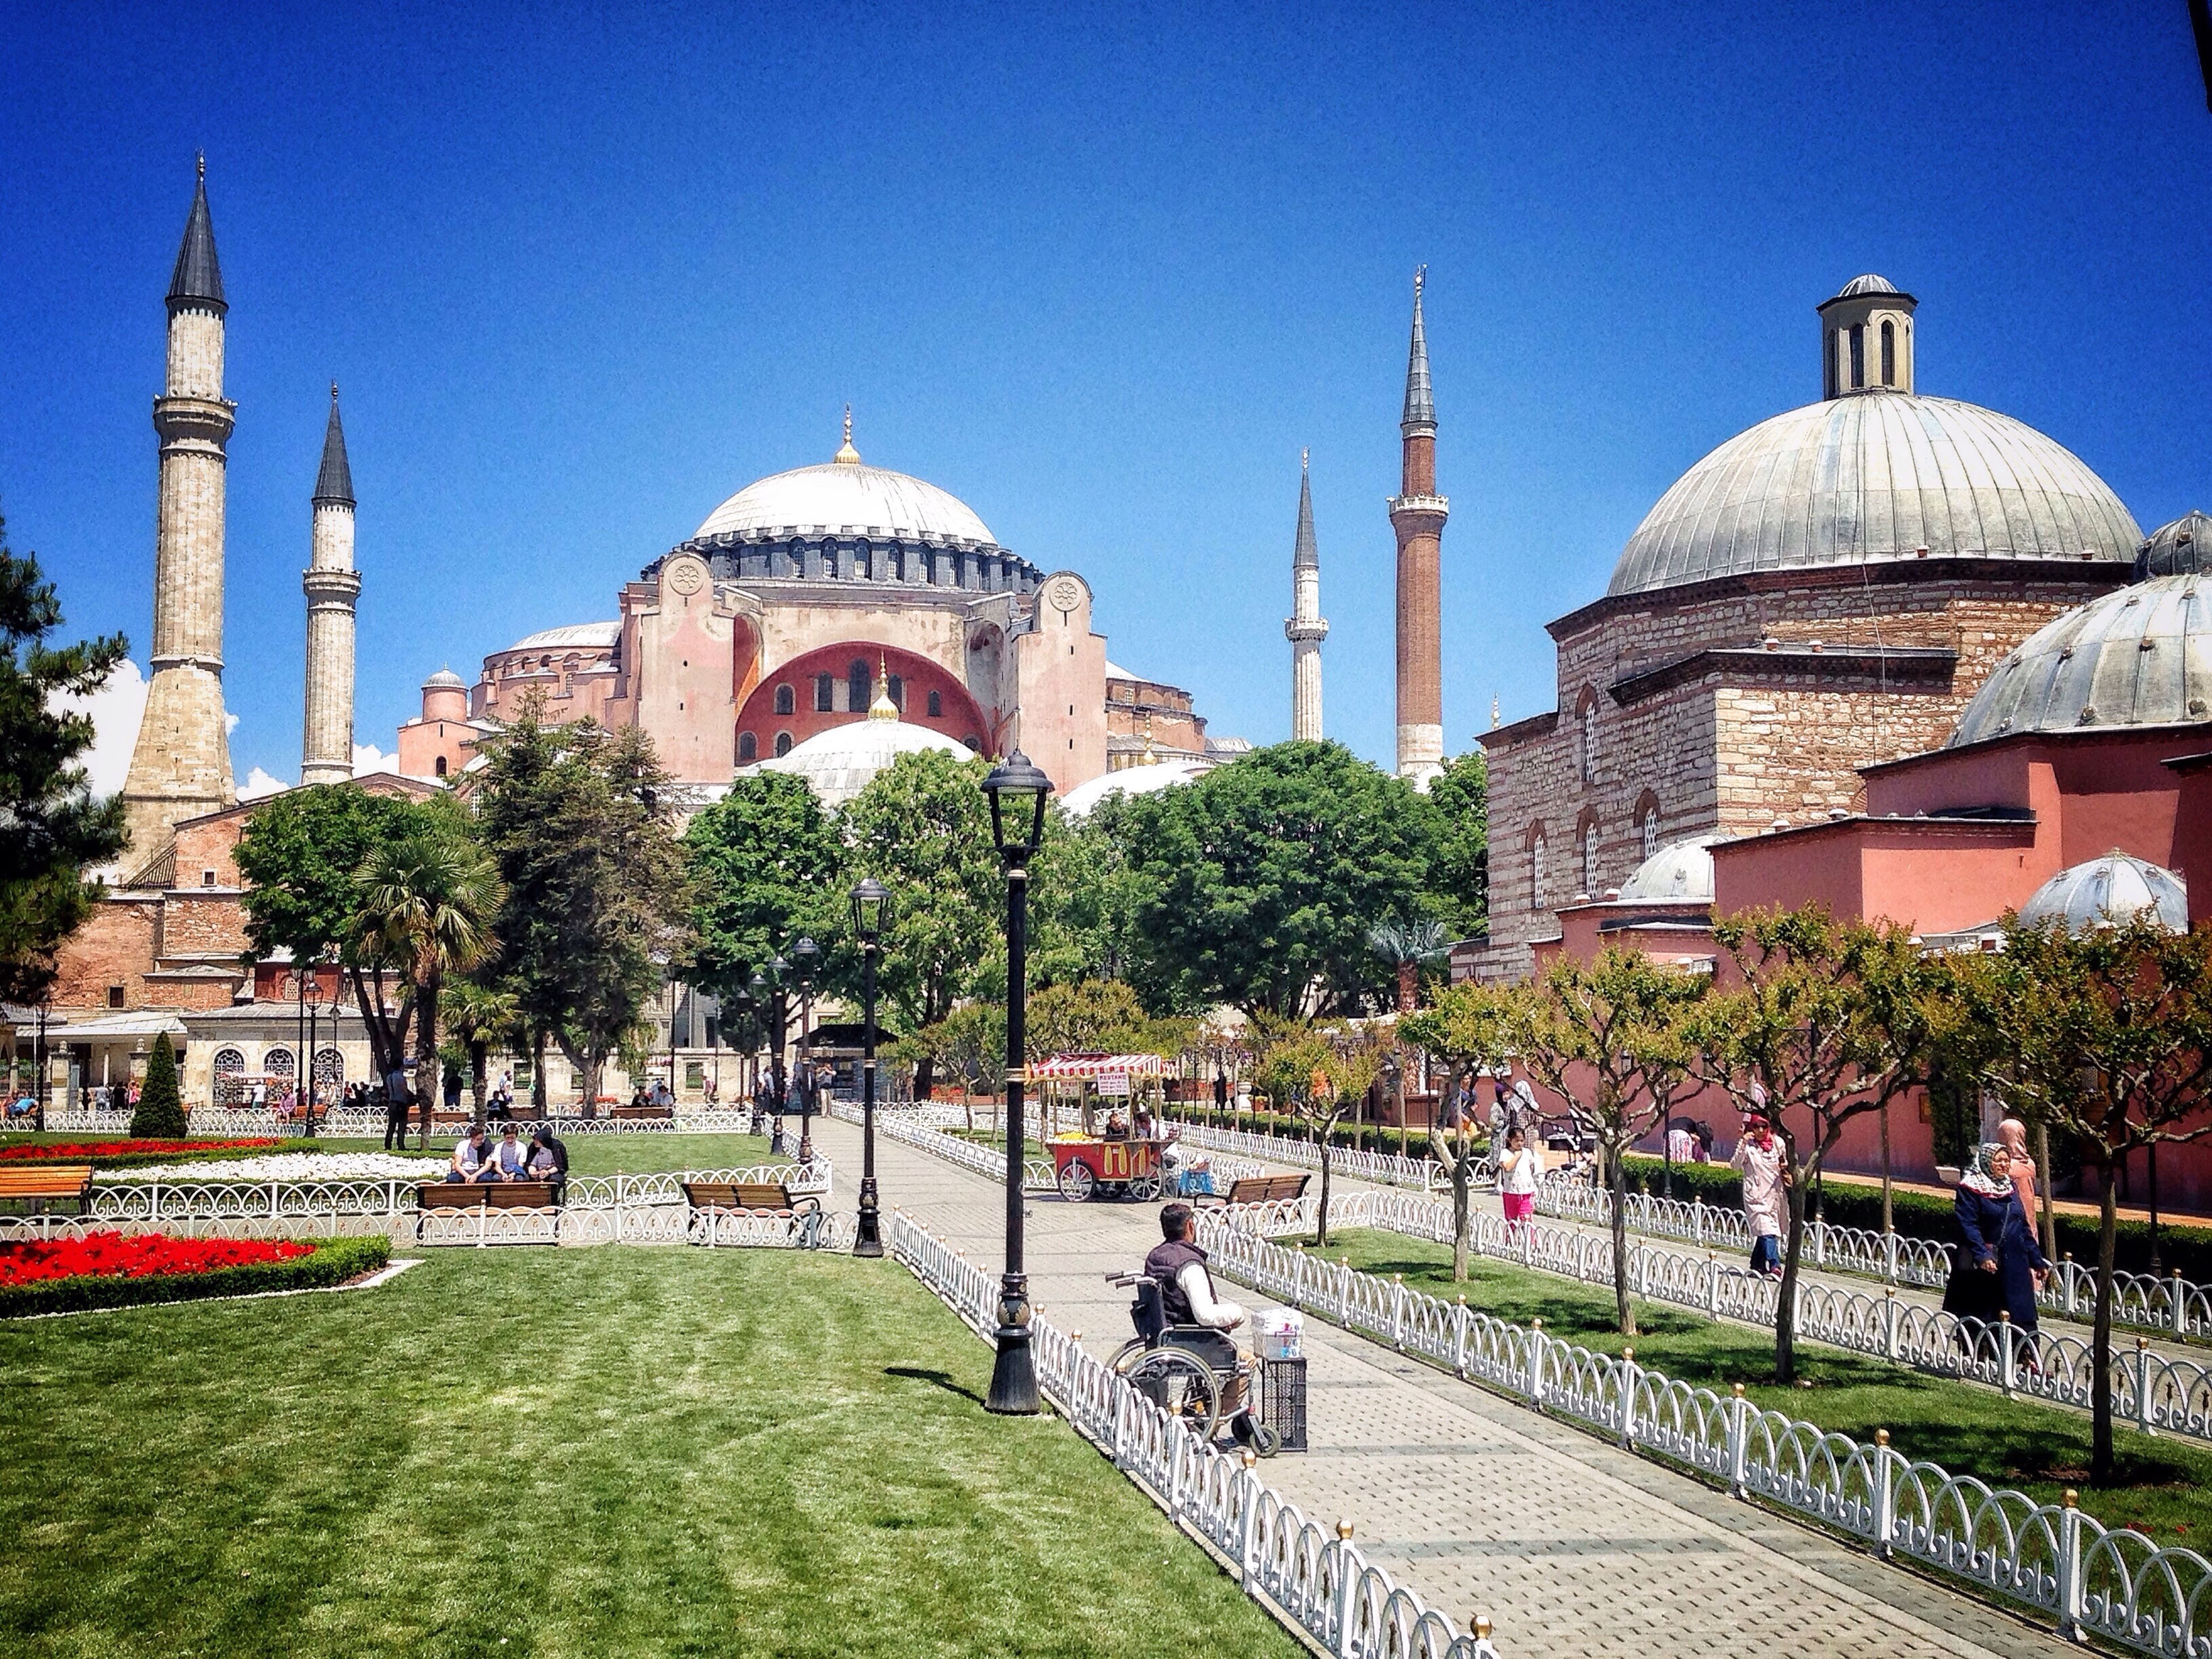 architecture, built structure, building exterior, famous place, dome, place of worship, religion, clear sky, tourism, travel destinations, travel, blue, international landmark, tree, spirituality, islam, mosque, incidental people